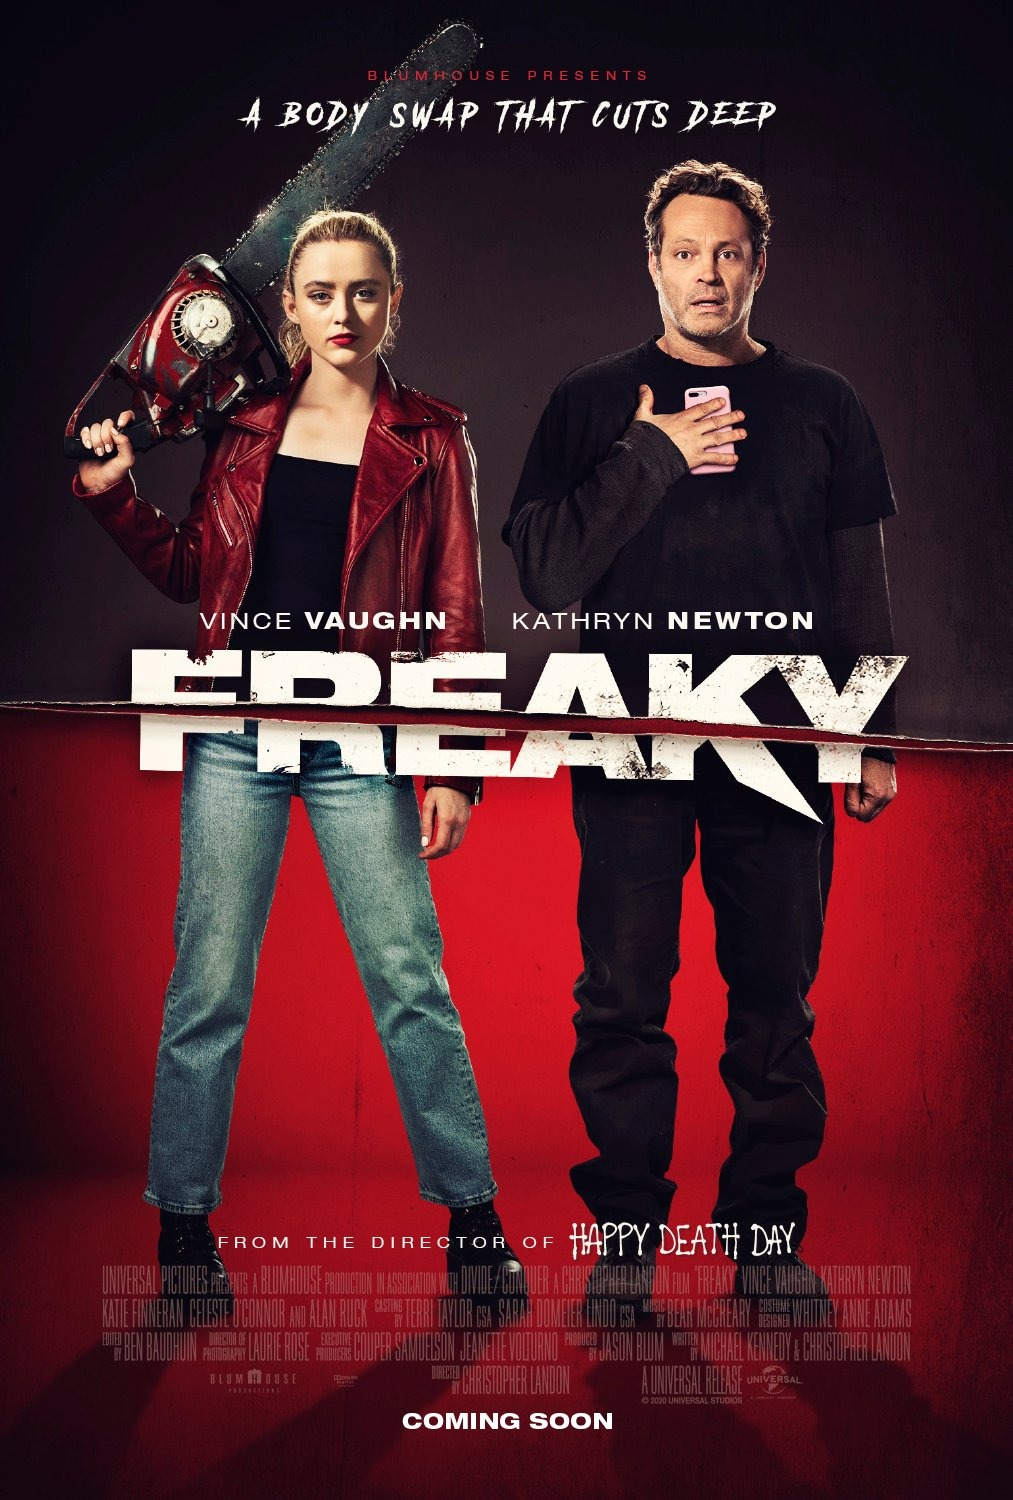 Freaky poster starring Vince Vaughn and Kathryn Newton